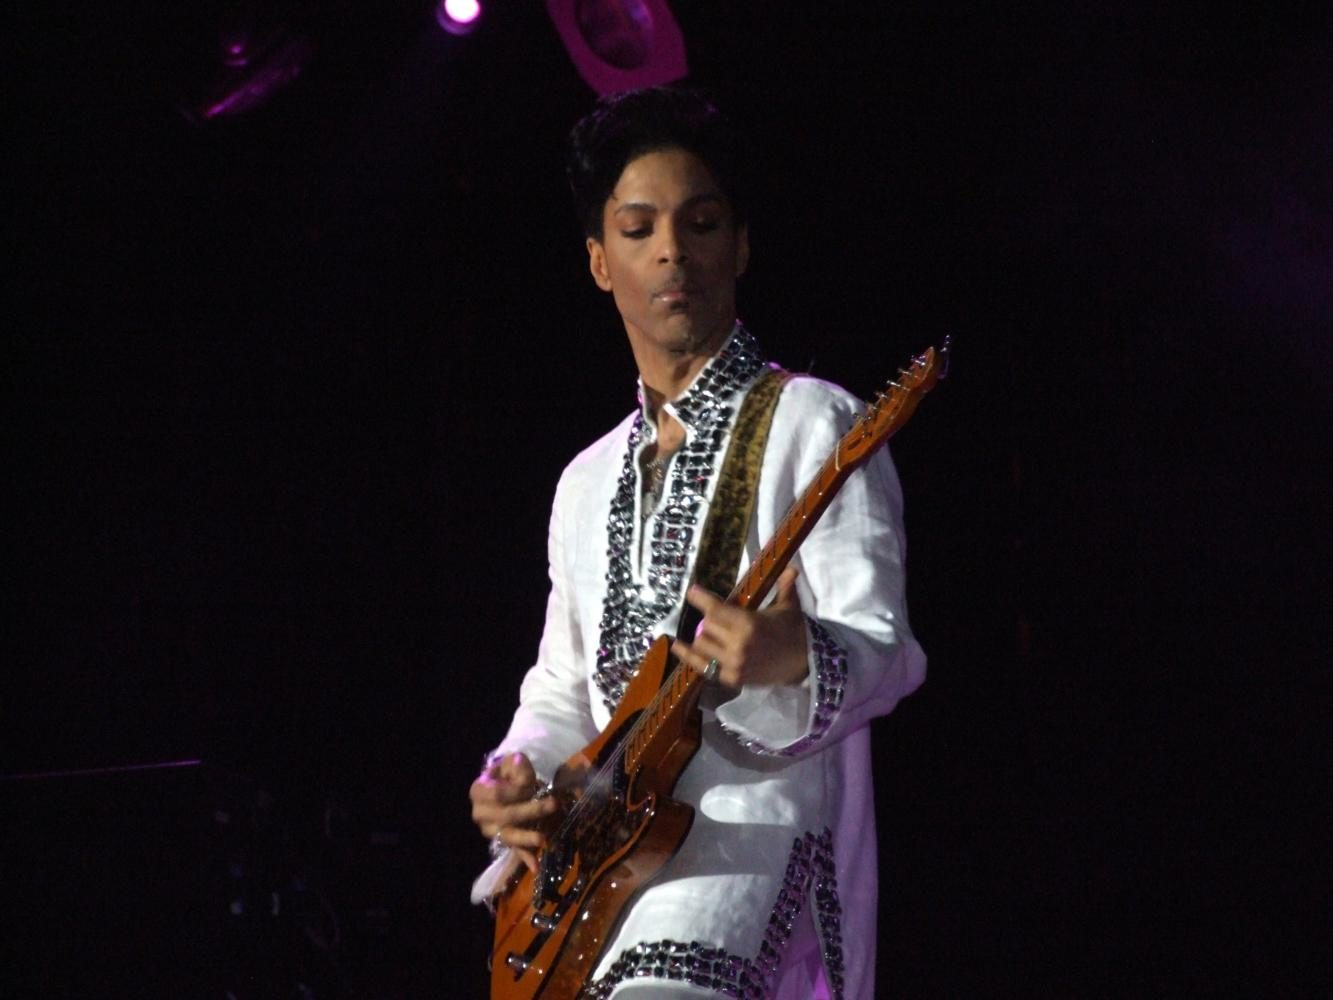 Prince+playing+at+Coachella+2008.